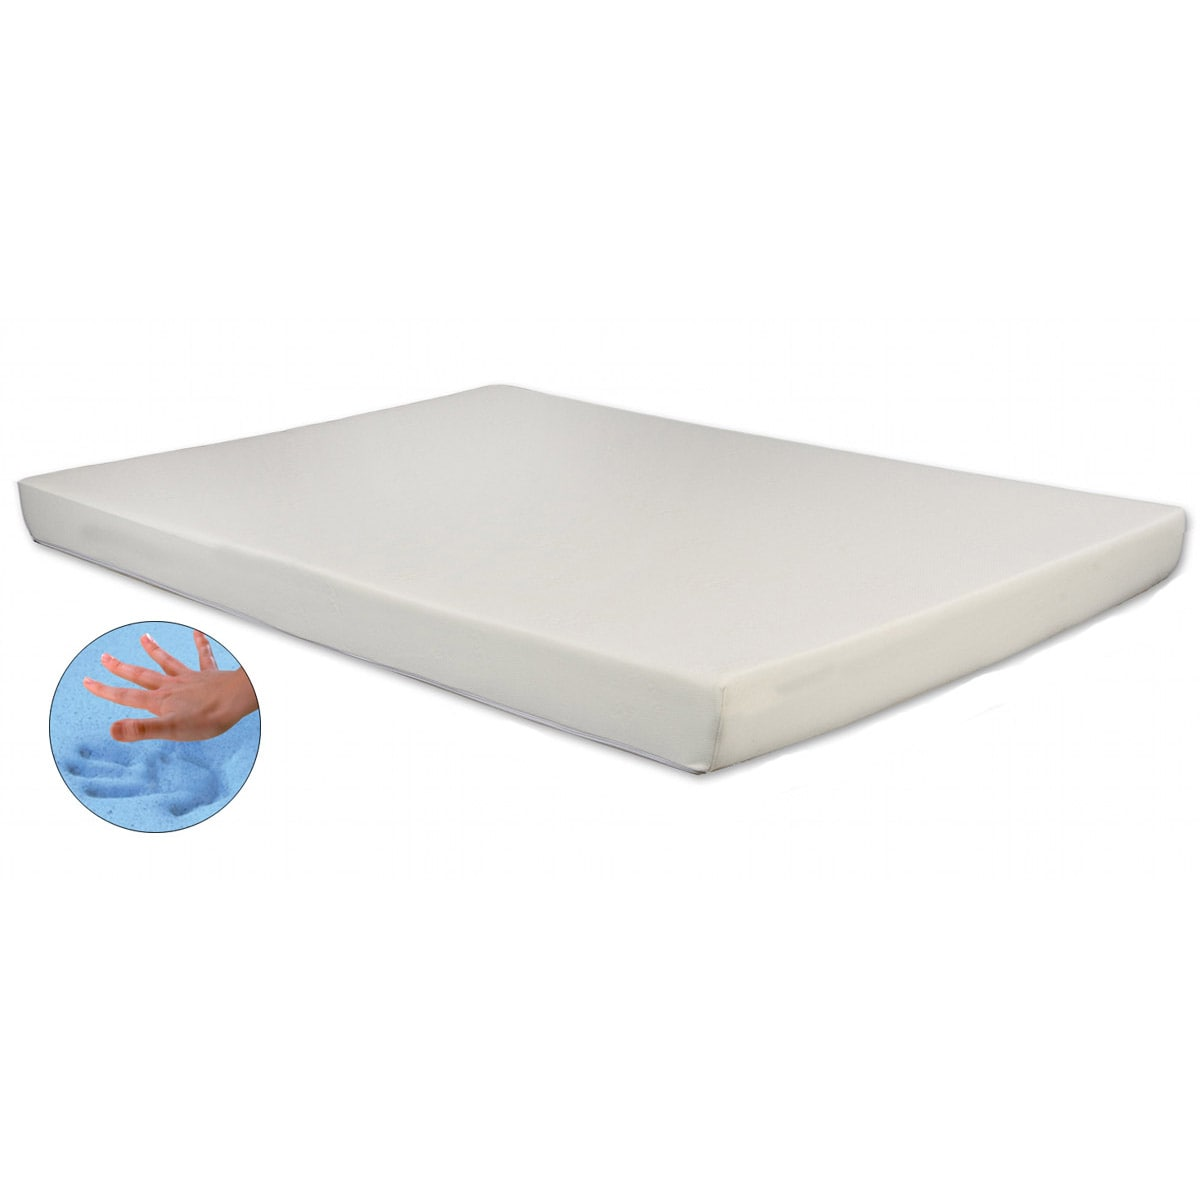 Gel Infused Memory Foam 4.75-inch RV Mattress